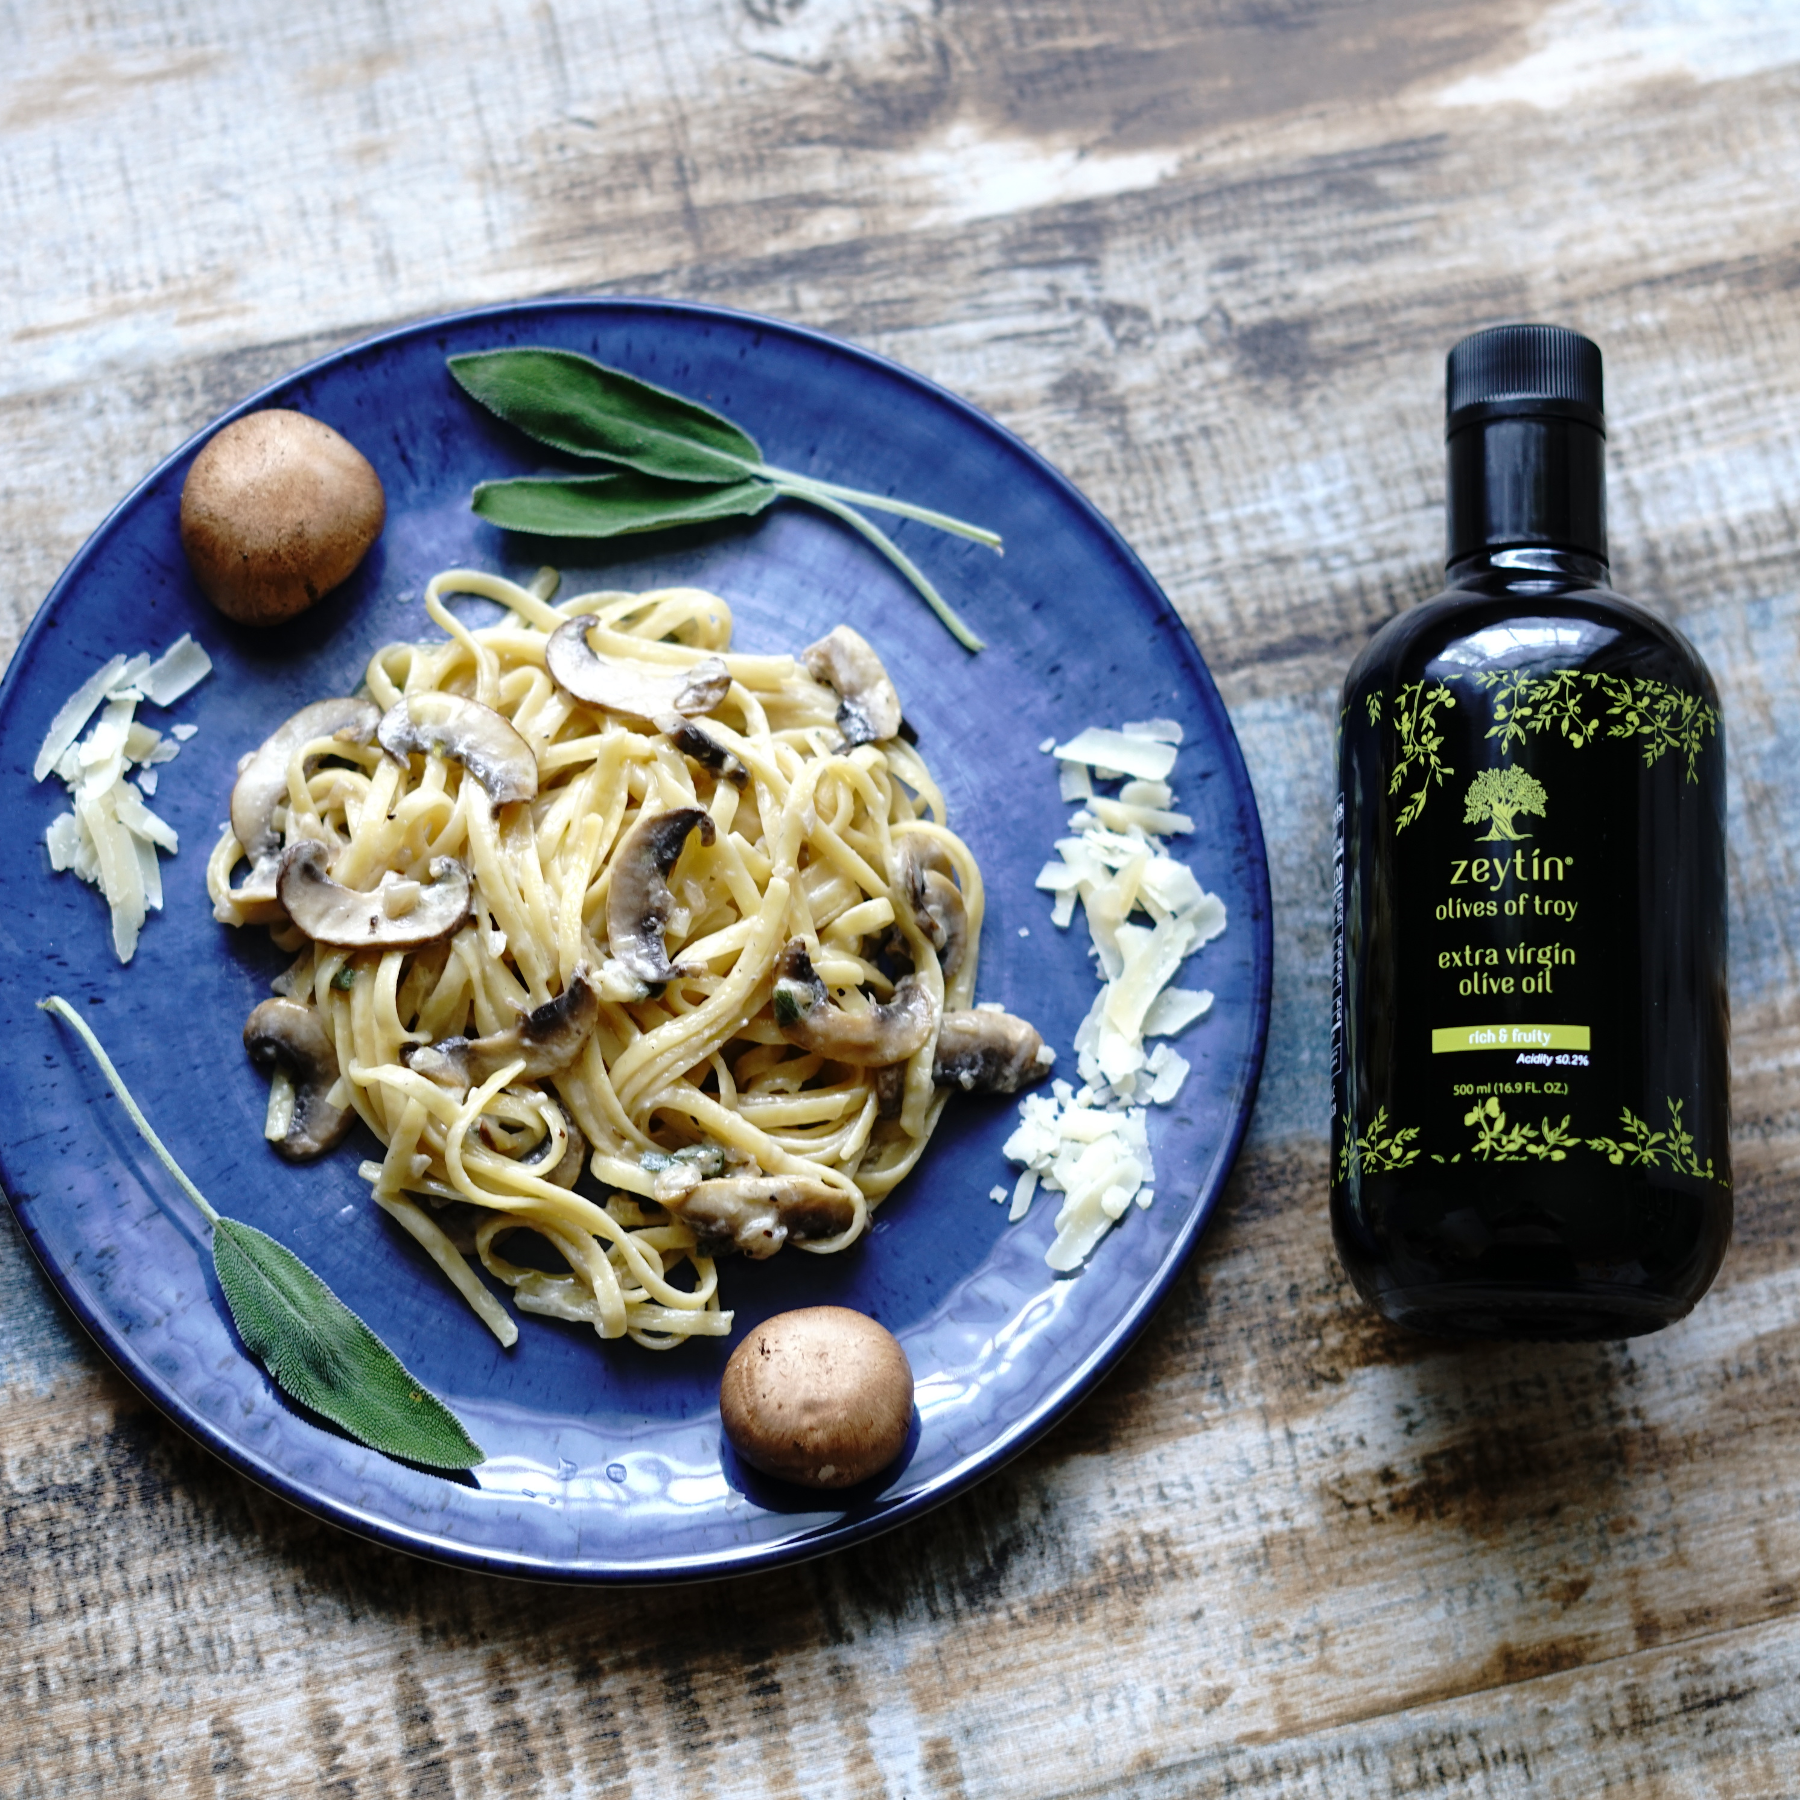 Extra Virgin Olive Oil 500ml - Rich & Fruity (Medium-Robust) - Zeytin - Olives of Troy